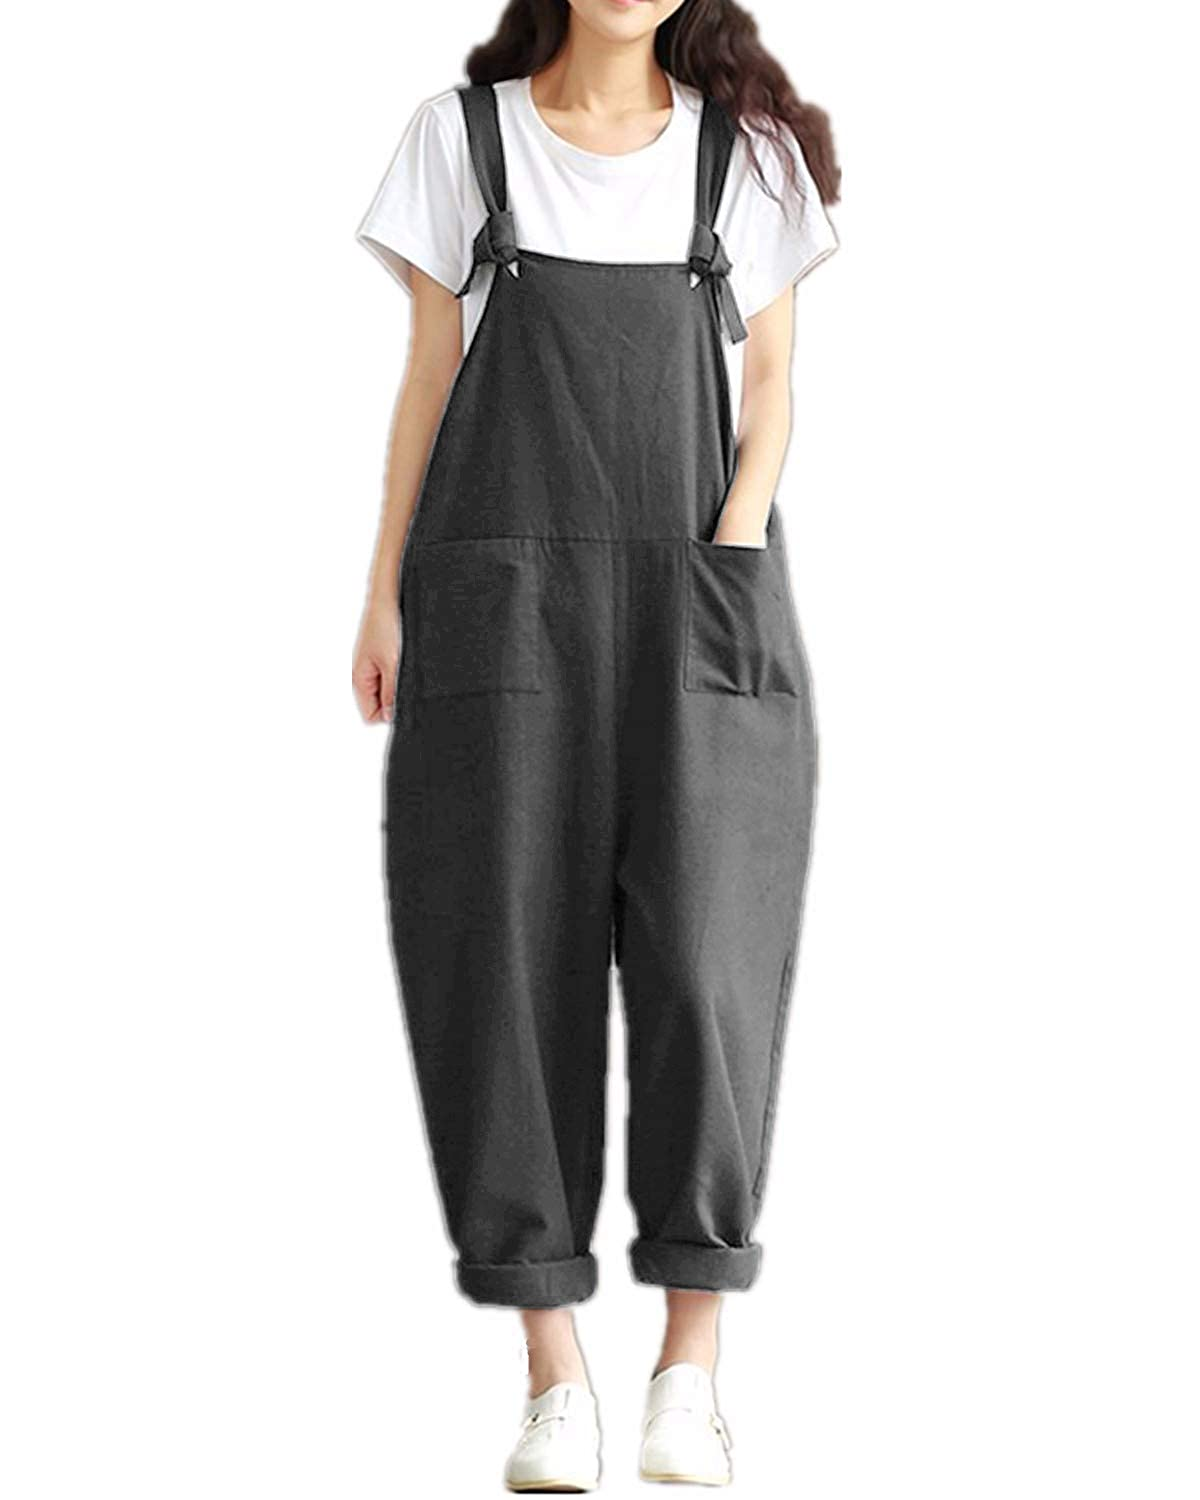 wide selection hot product vast selection ZANZEA Women's Dungarees Vintage Printed Loose Casual Baggy Sleeveless  Overall Long Jumpsuit Playsuit Trousers Pants Dungarees